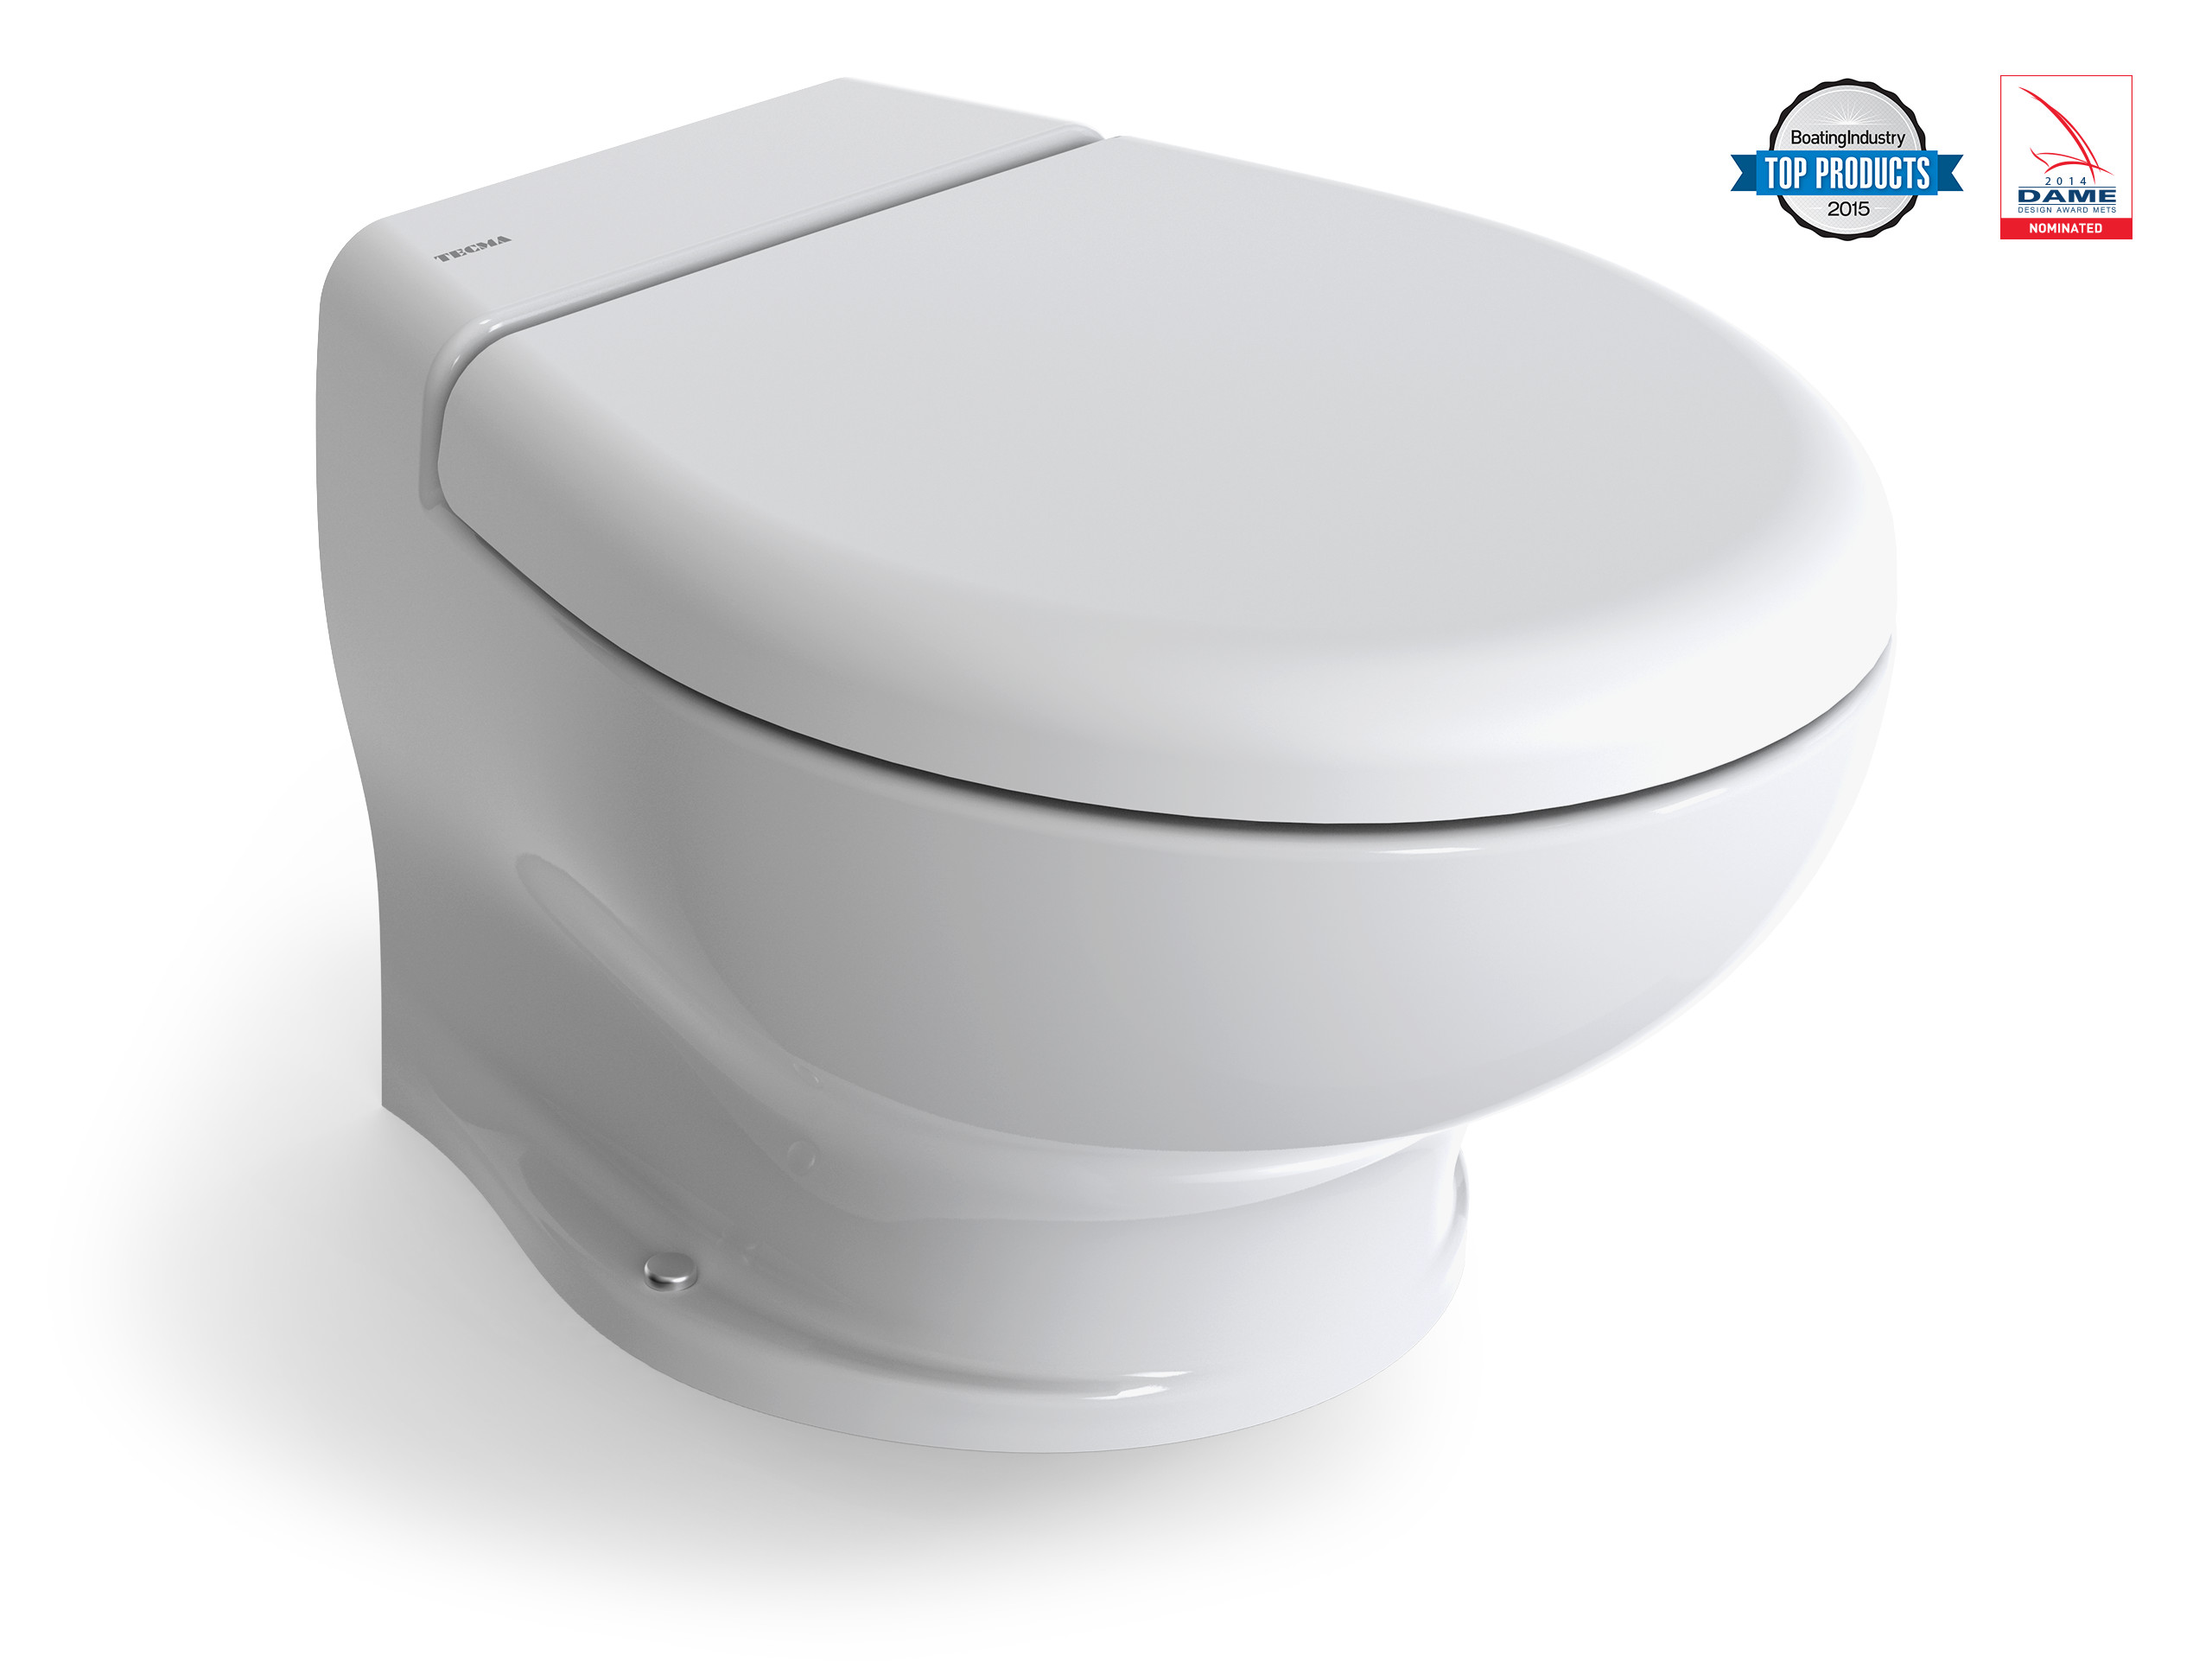 Nano toilet designed by Emanuele Pangrazi is Top Product 2015